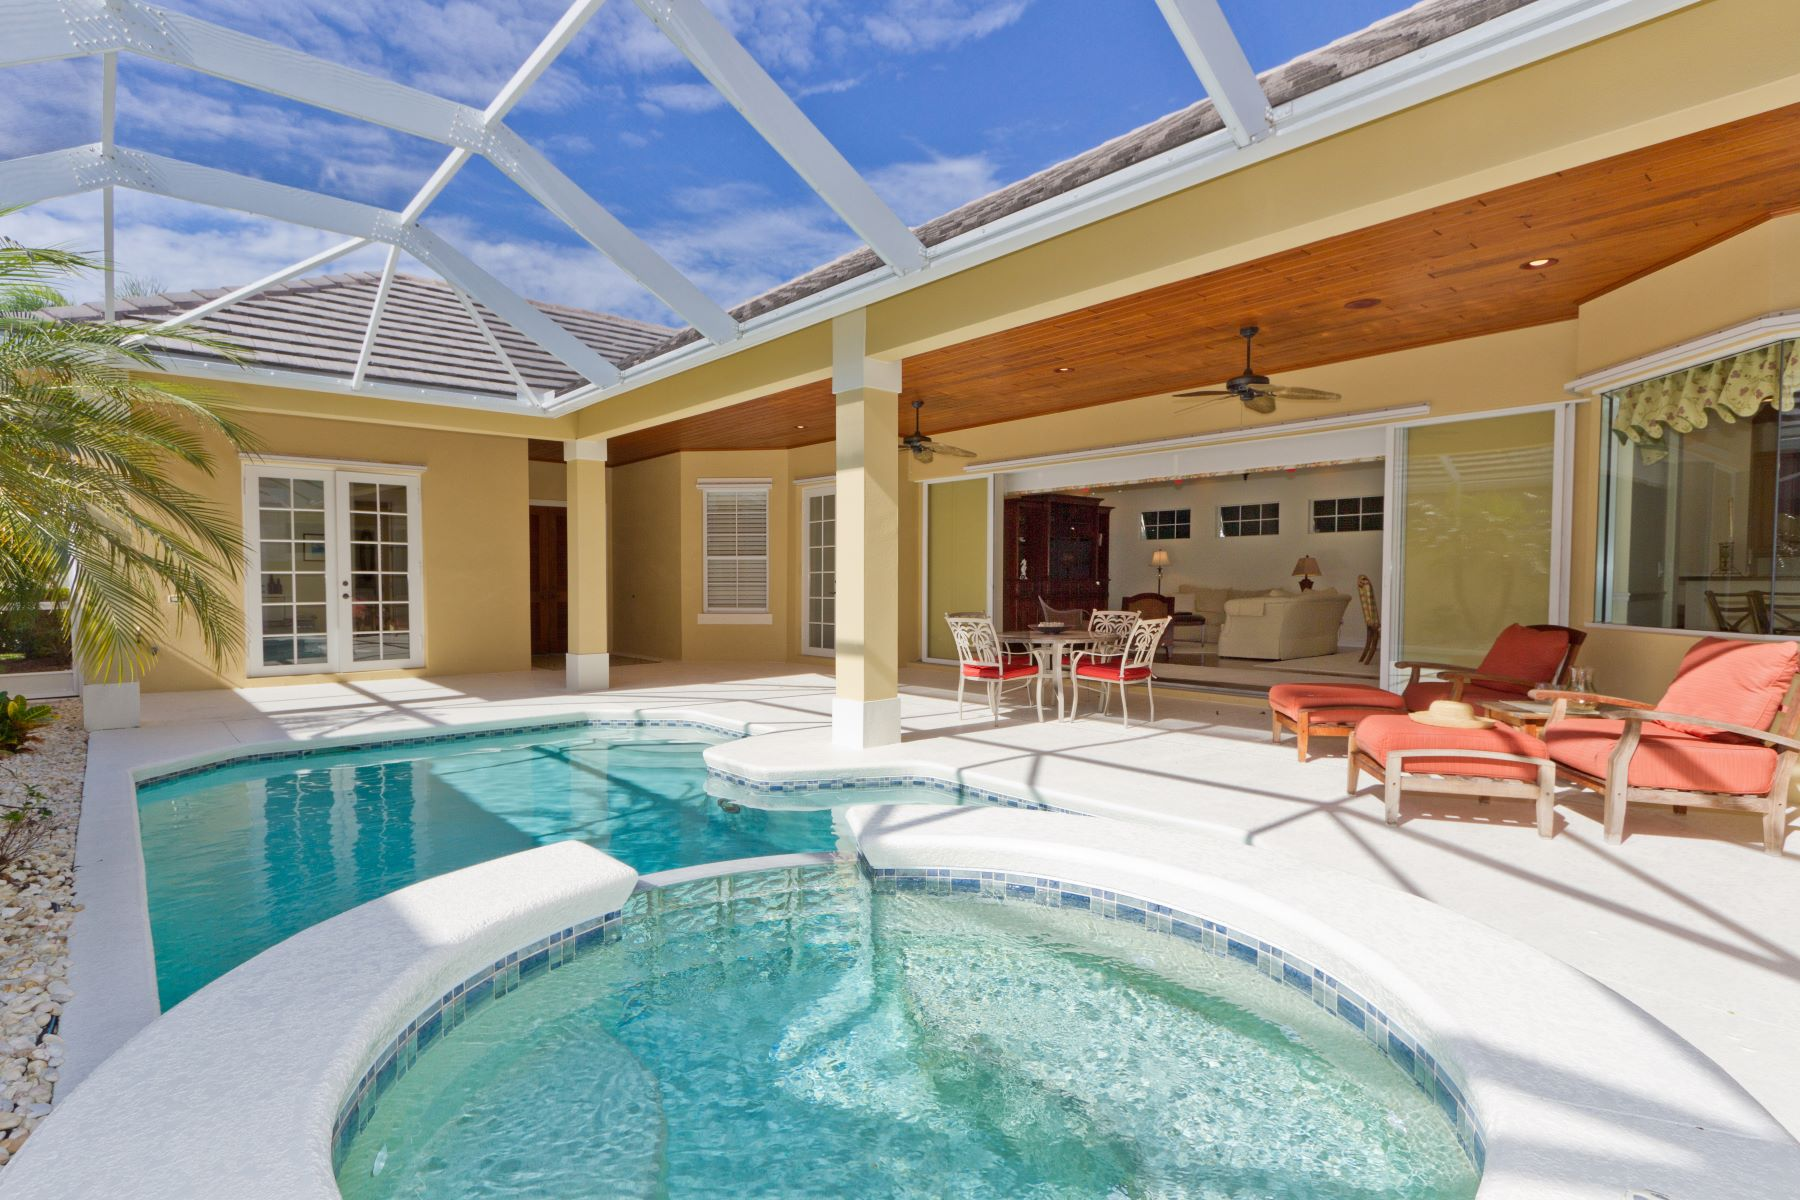 Single Family Homes for Sale at Tropical Courtyard Style Pool Home with Guest Casita 9240 Spring Time Drive Vero Beach, Florida 32963 United States